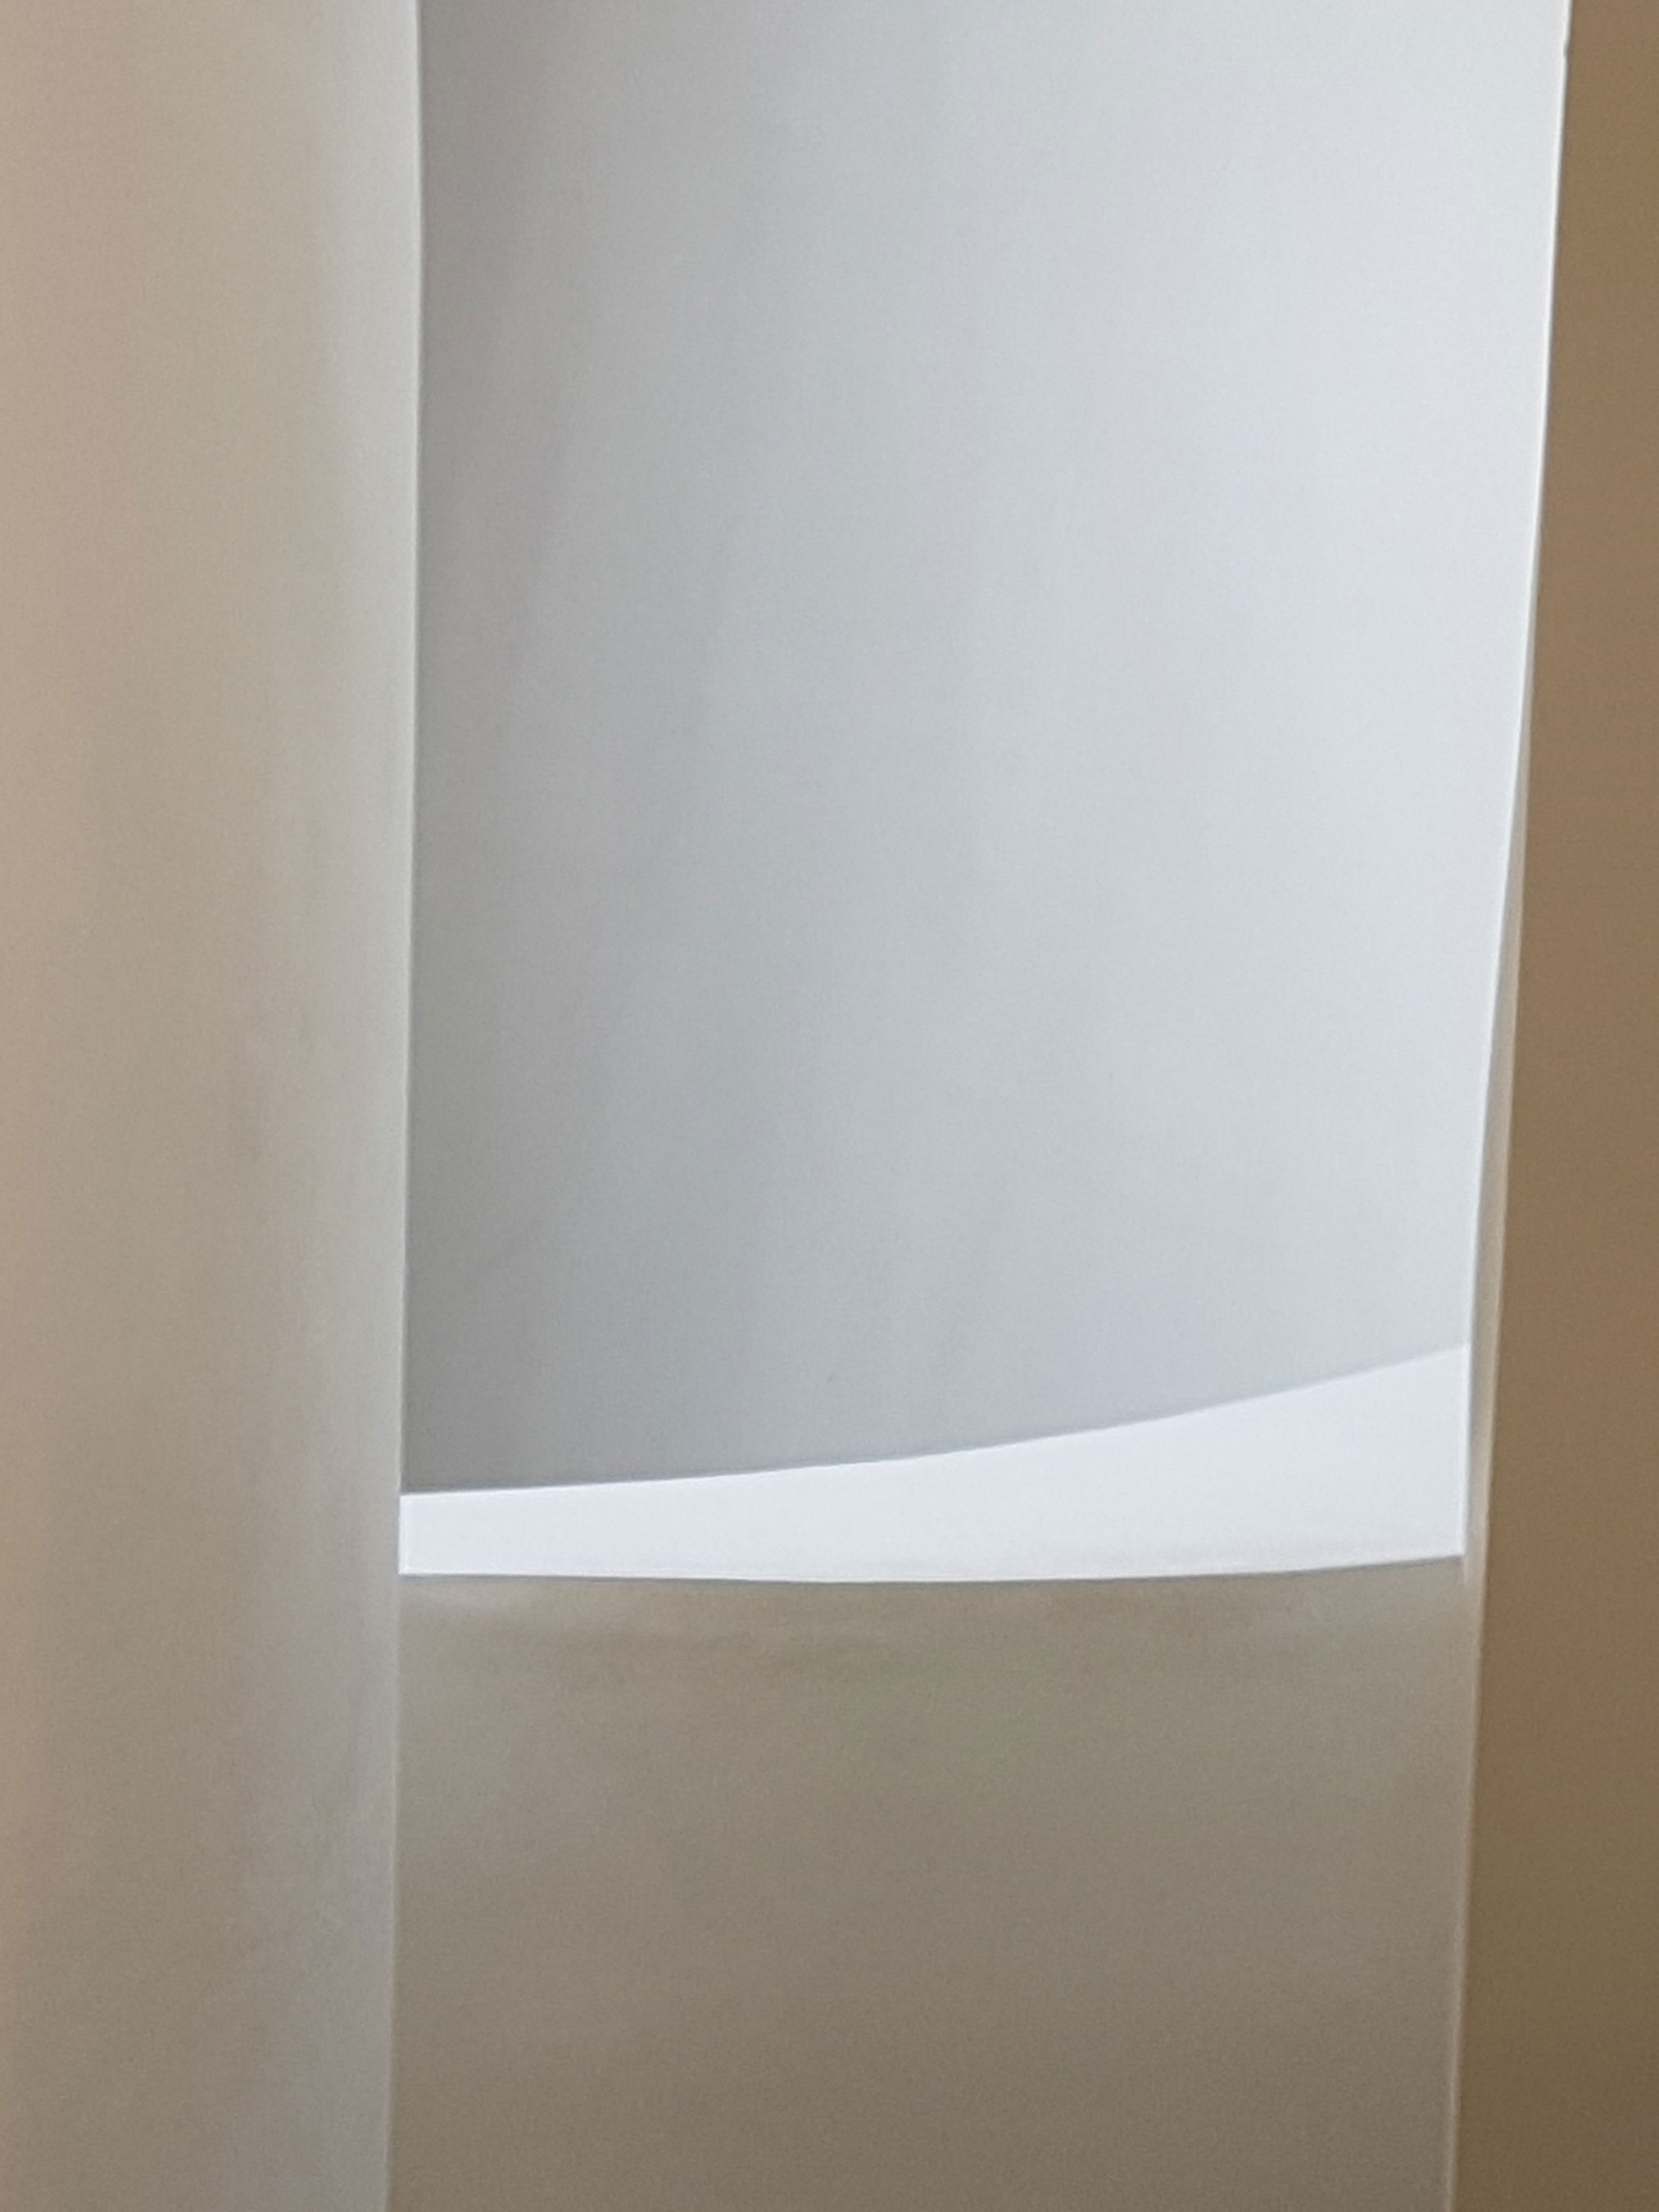 Wolfgang Höhl/Light, Space and Moment #2, 2019